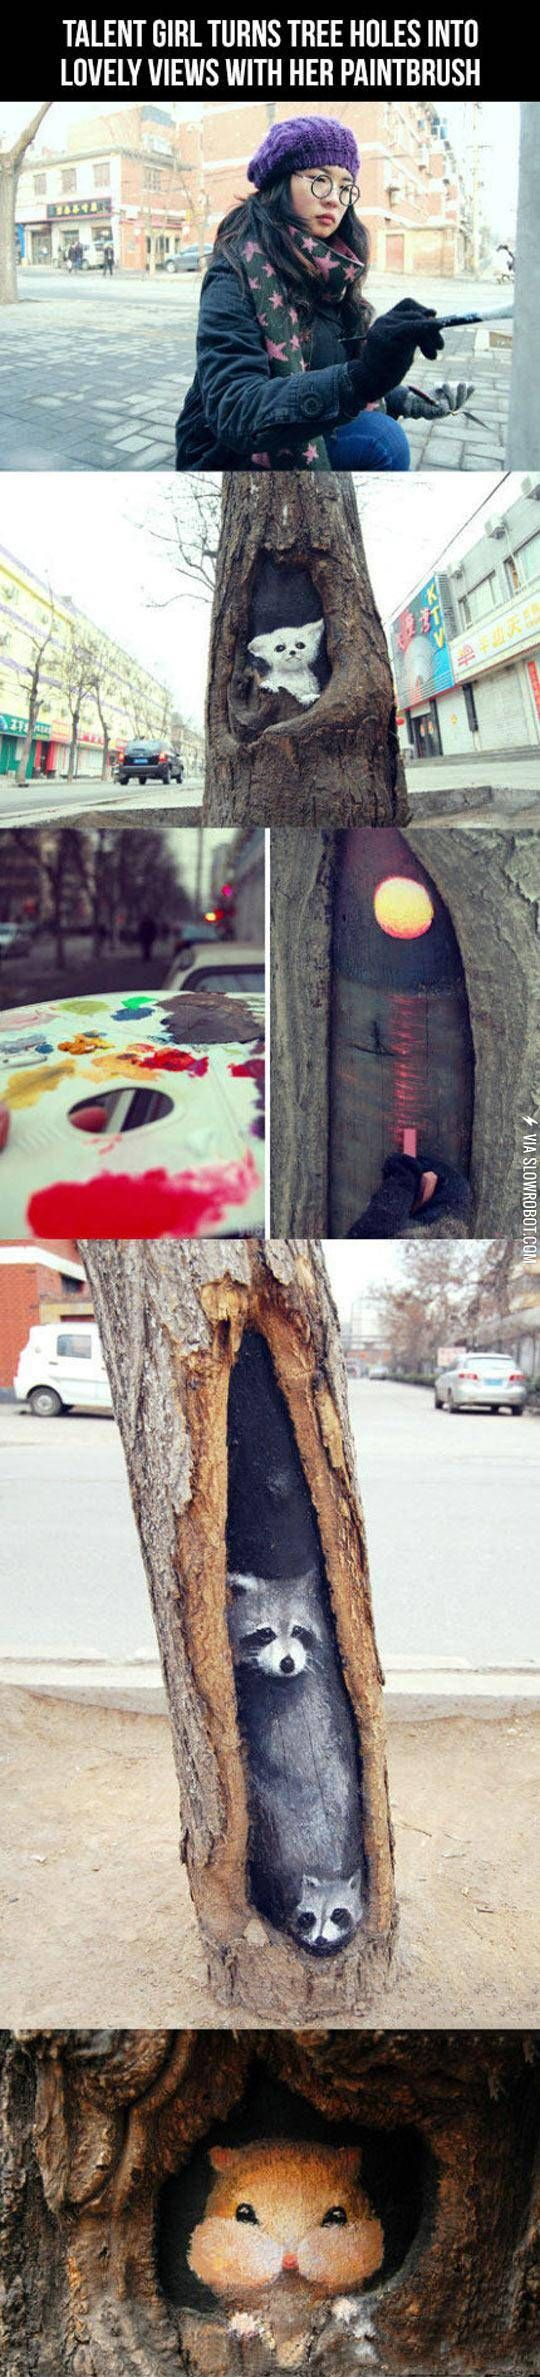 Clever Art Inside Tree Holes